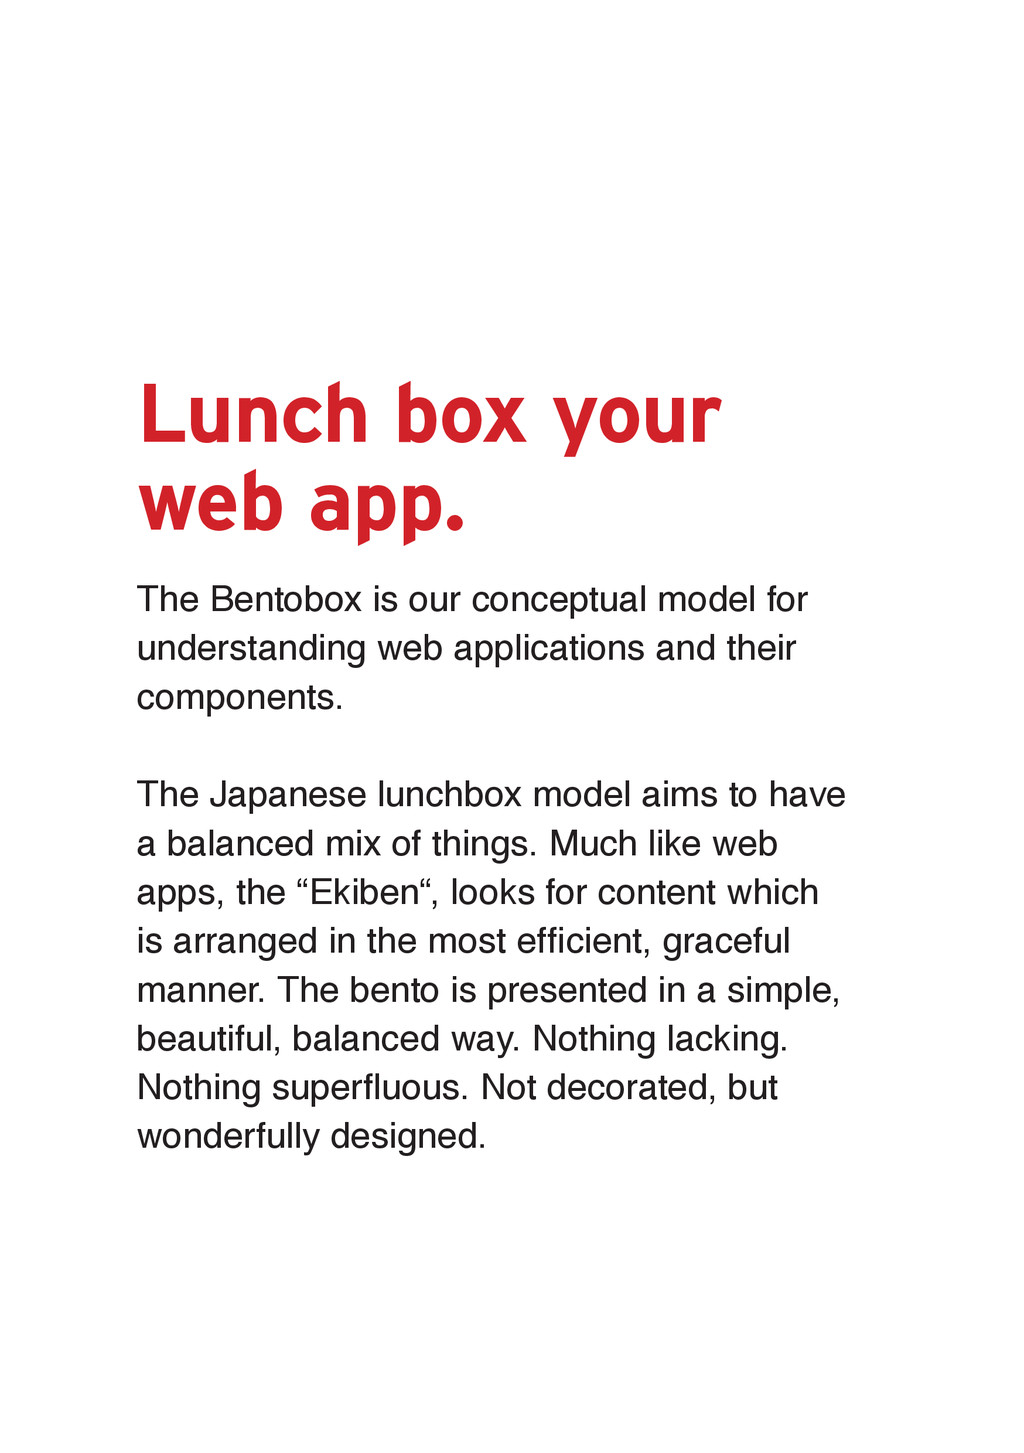 Lunch box your web app. The Bentobox is our con...